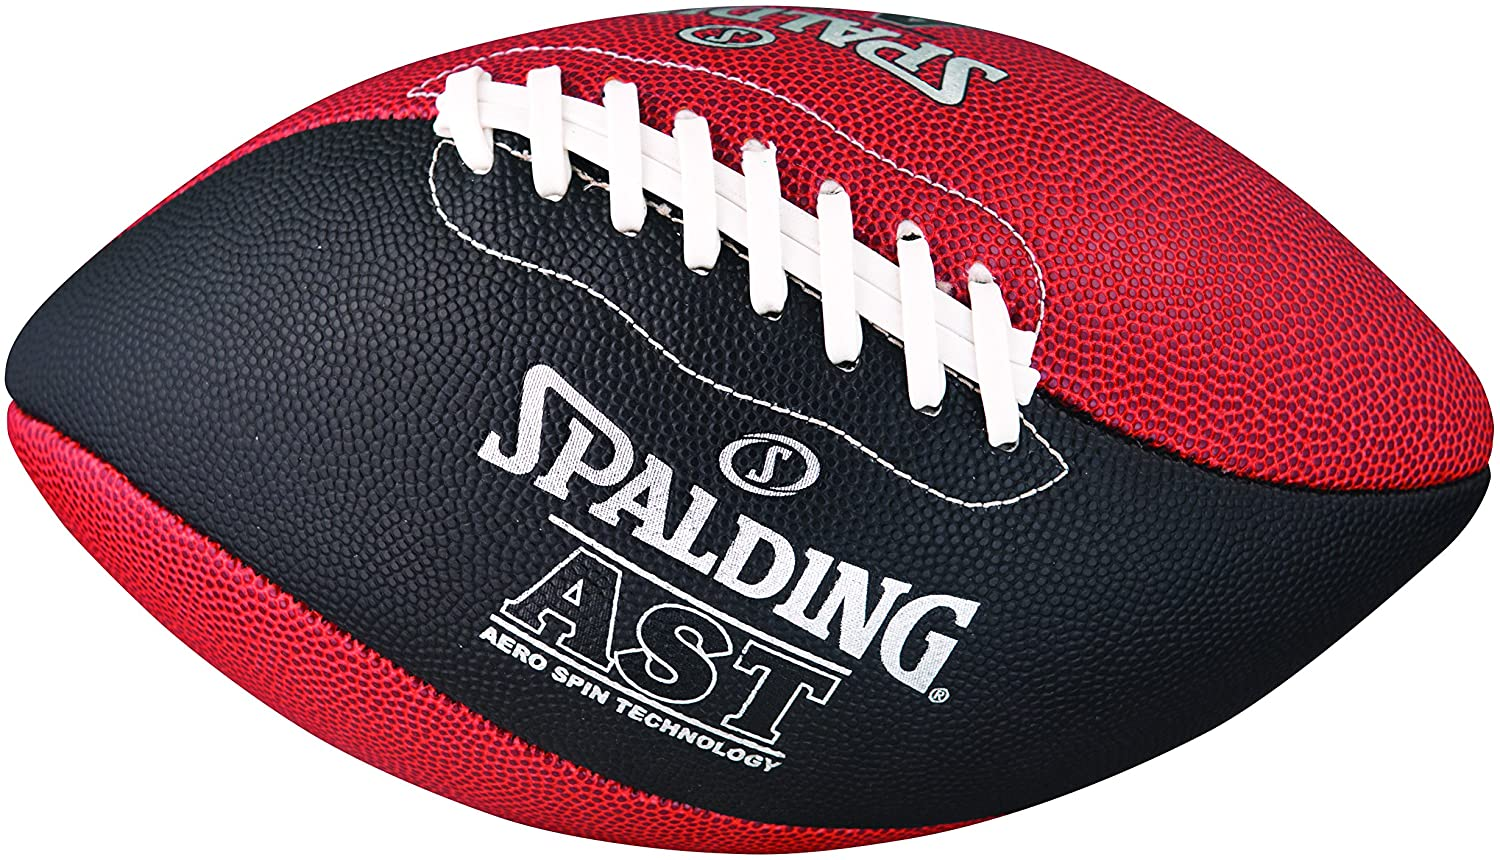 Spalding AST Football, Black/Brown, Full Size